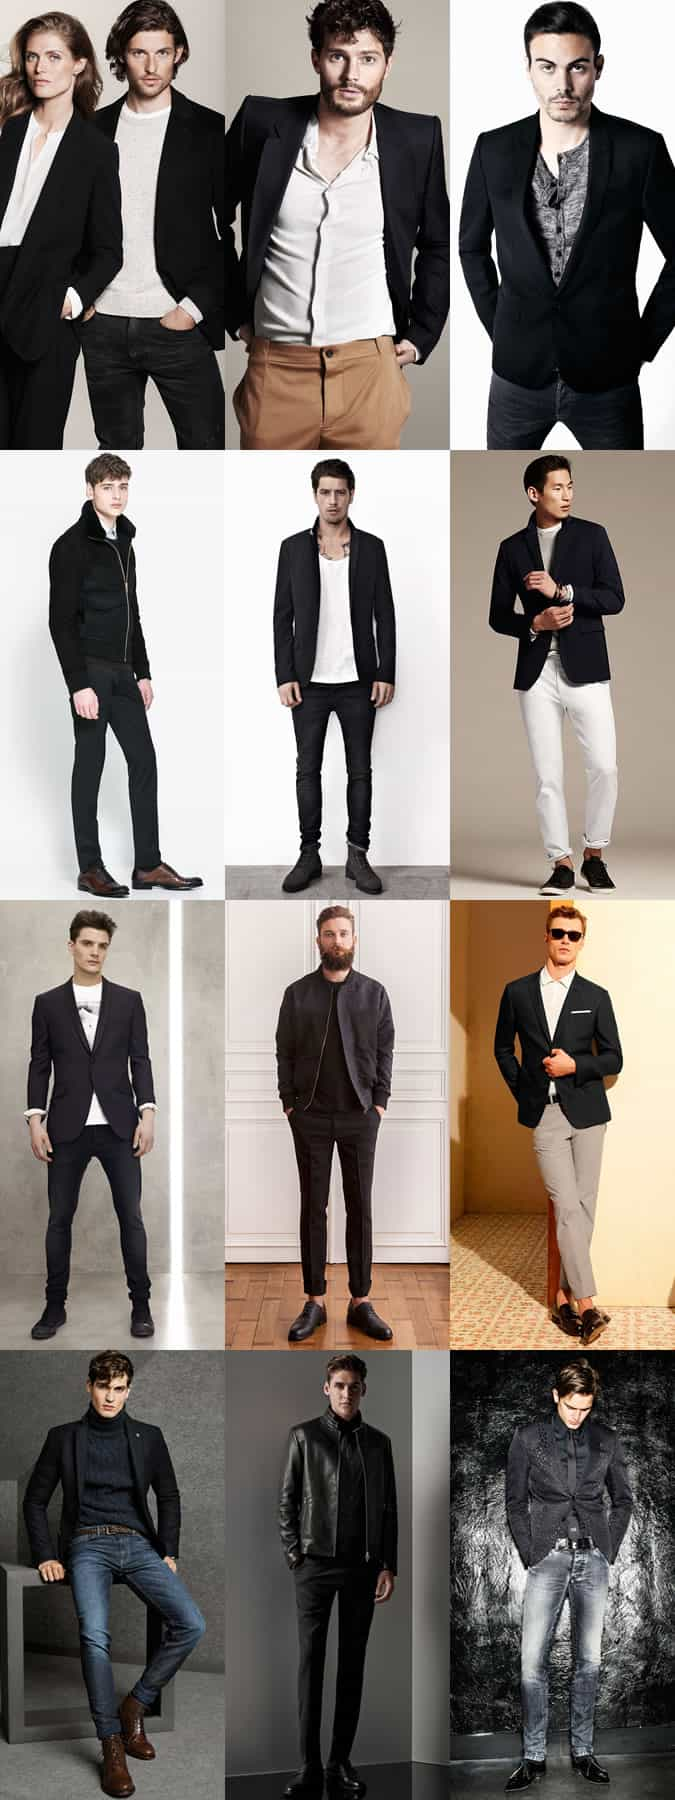 Men's Black Suit Separates - Worn In Smart-Casual Outfits For Nights Out